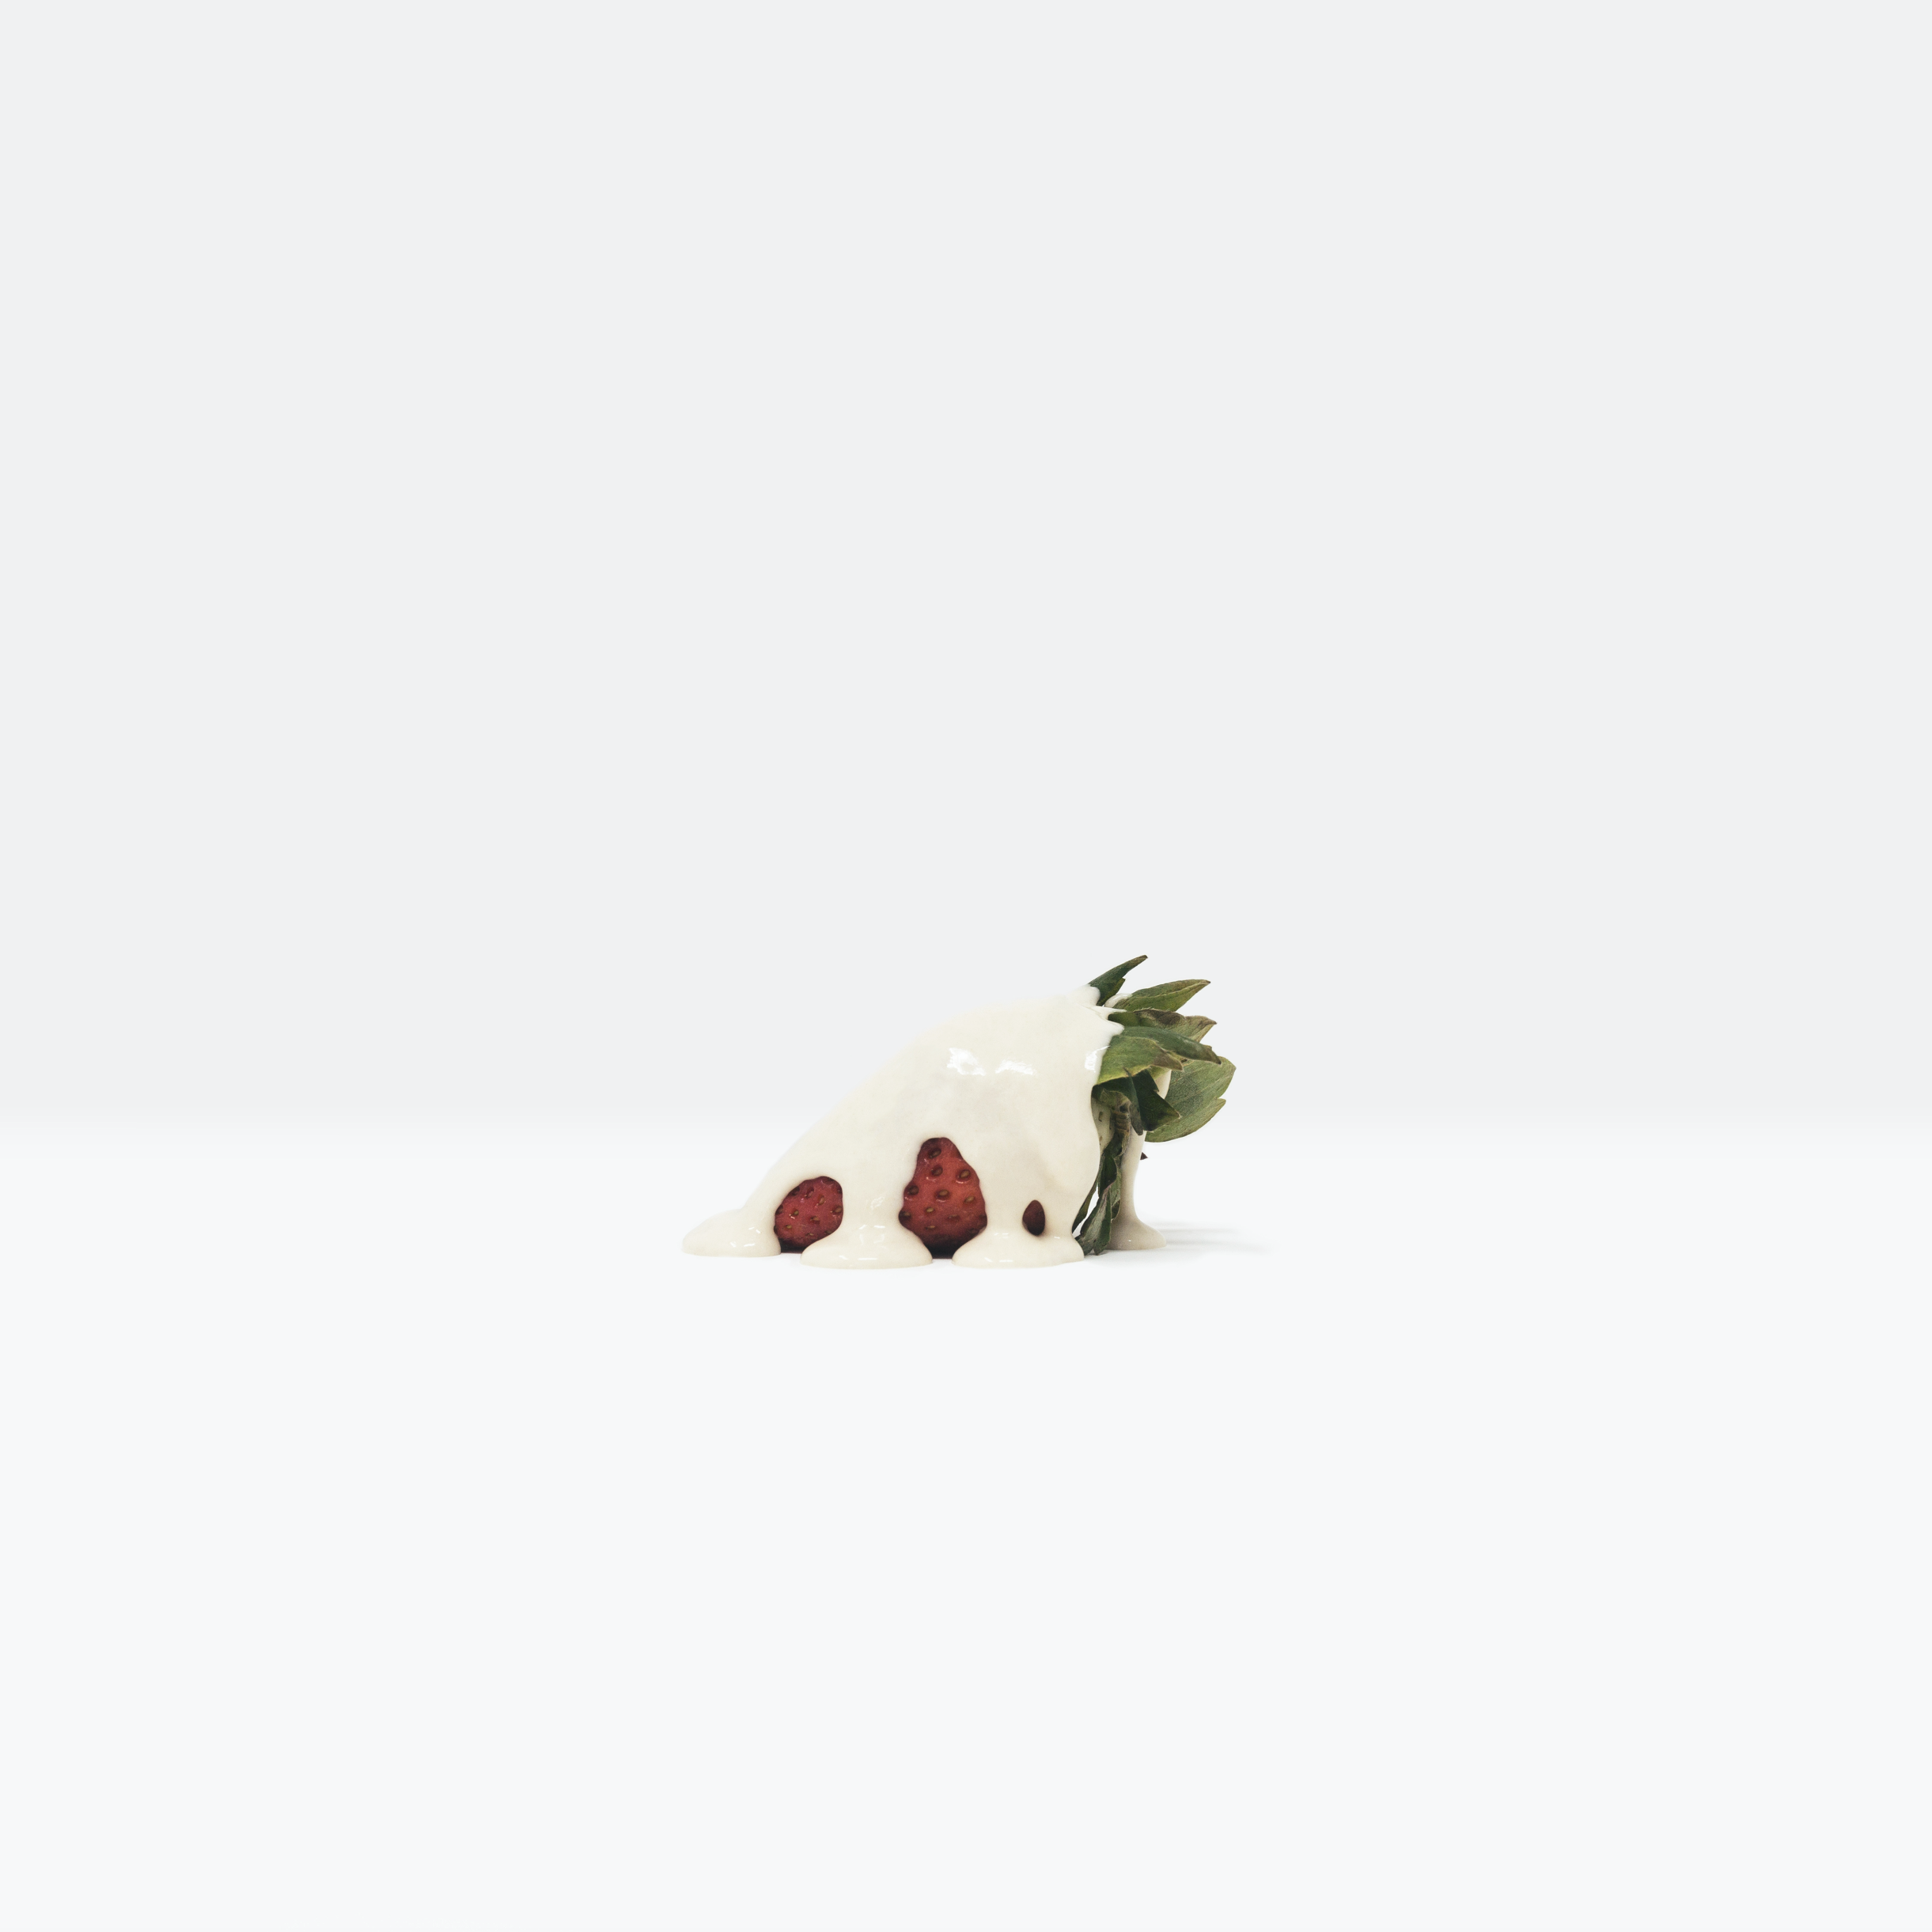 Minimalist, still life photograph of a strawberry covered in a paint-like substance highlighting the value of food, evoking the crucial reflection of the Global Food Crisis